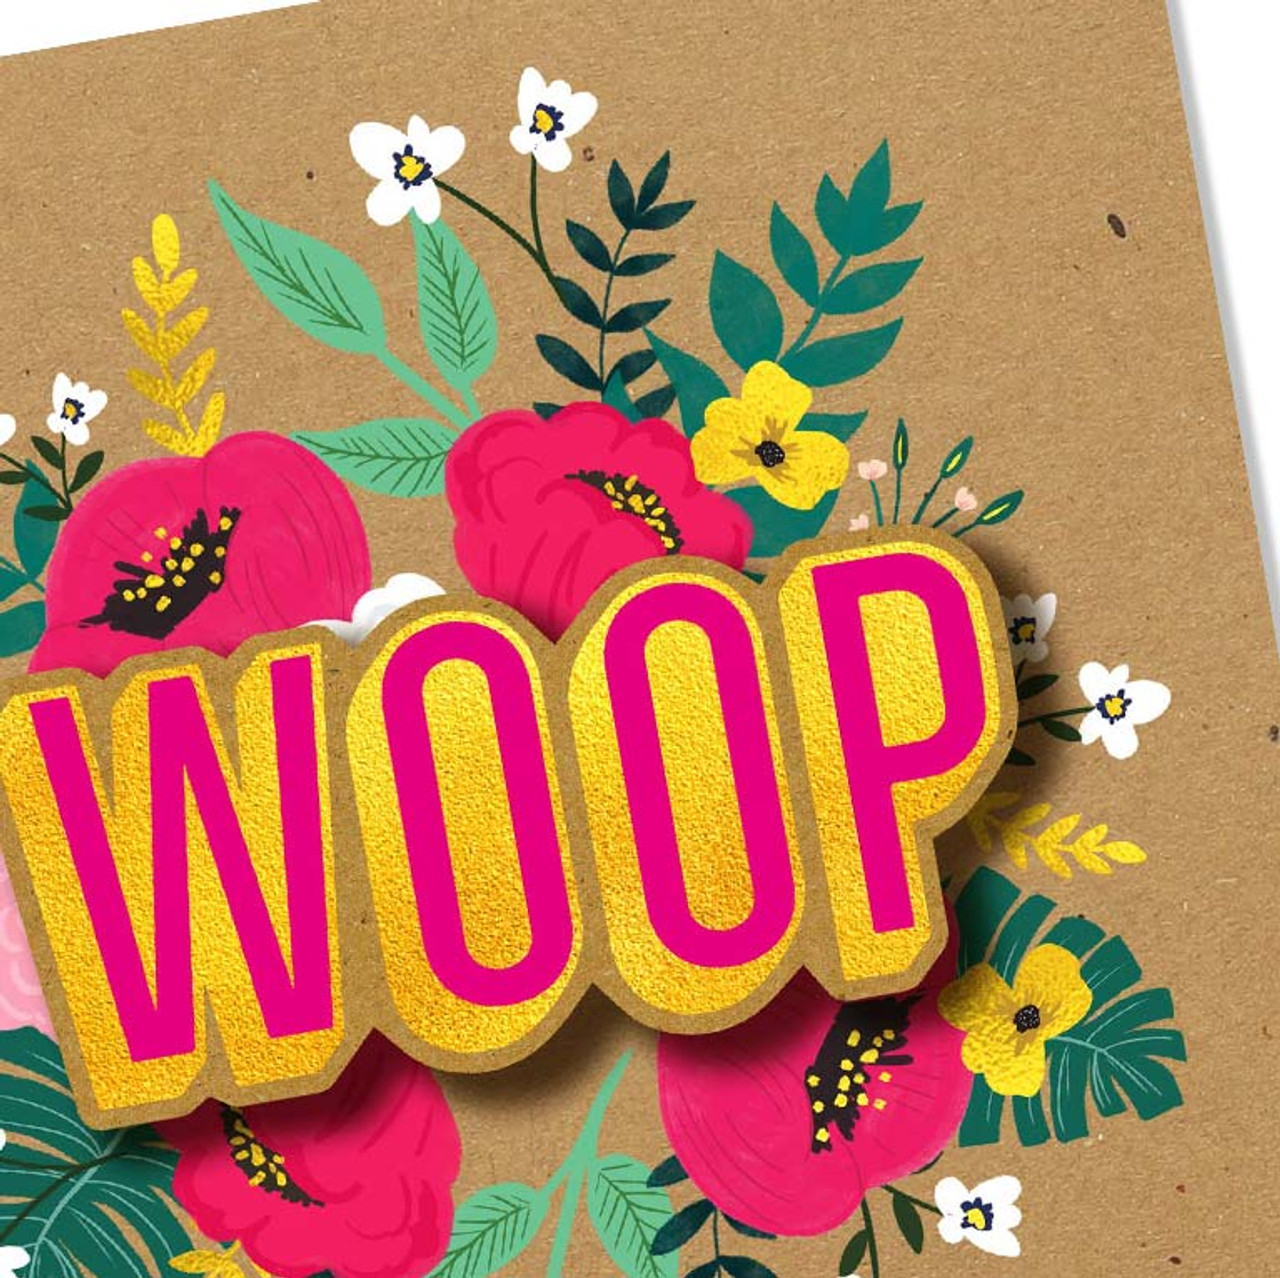 Woop Flower Greeting Card Handmade by Tache